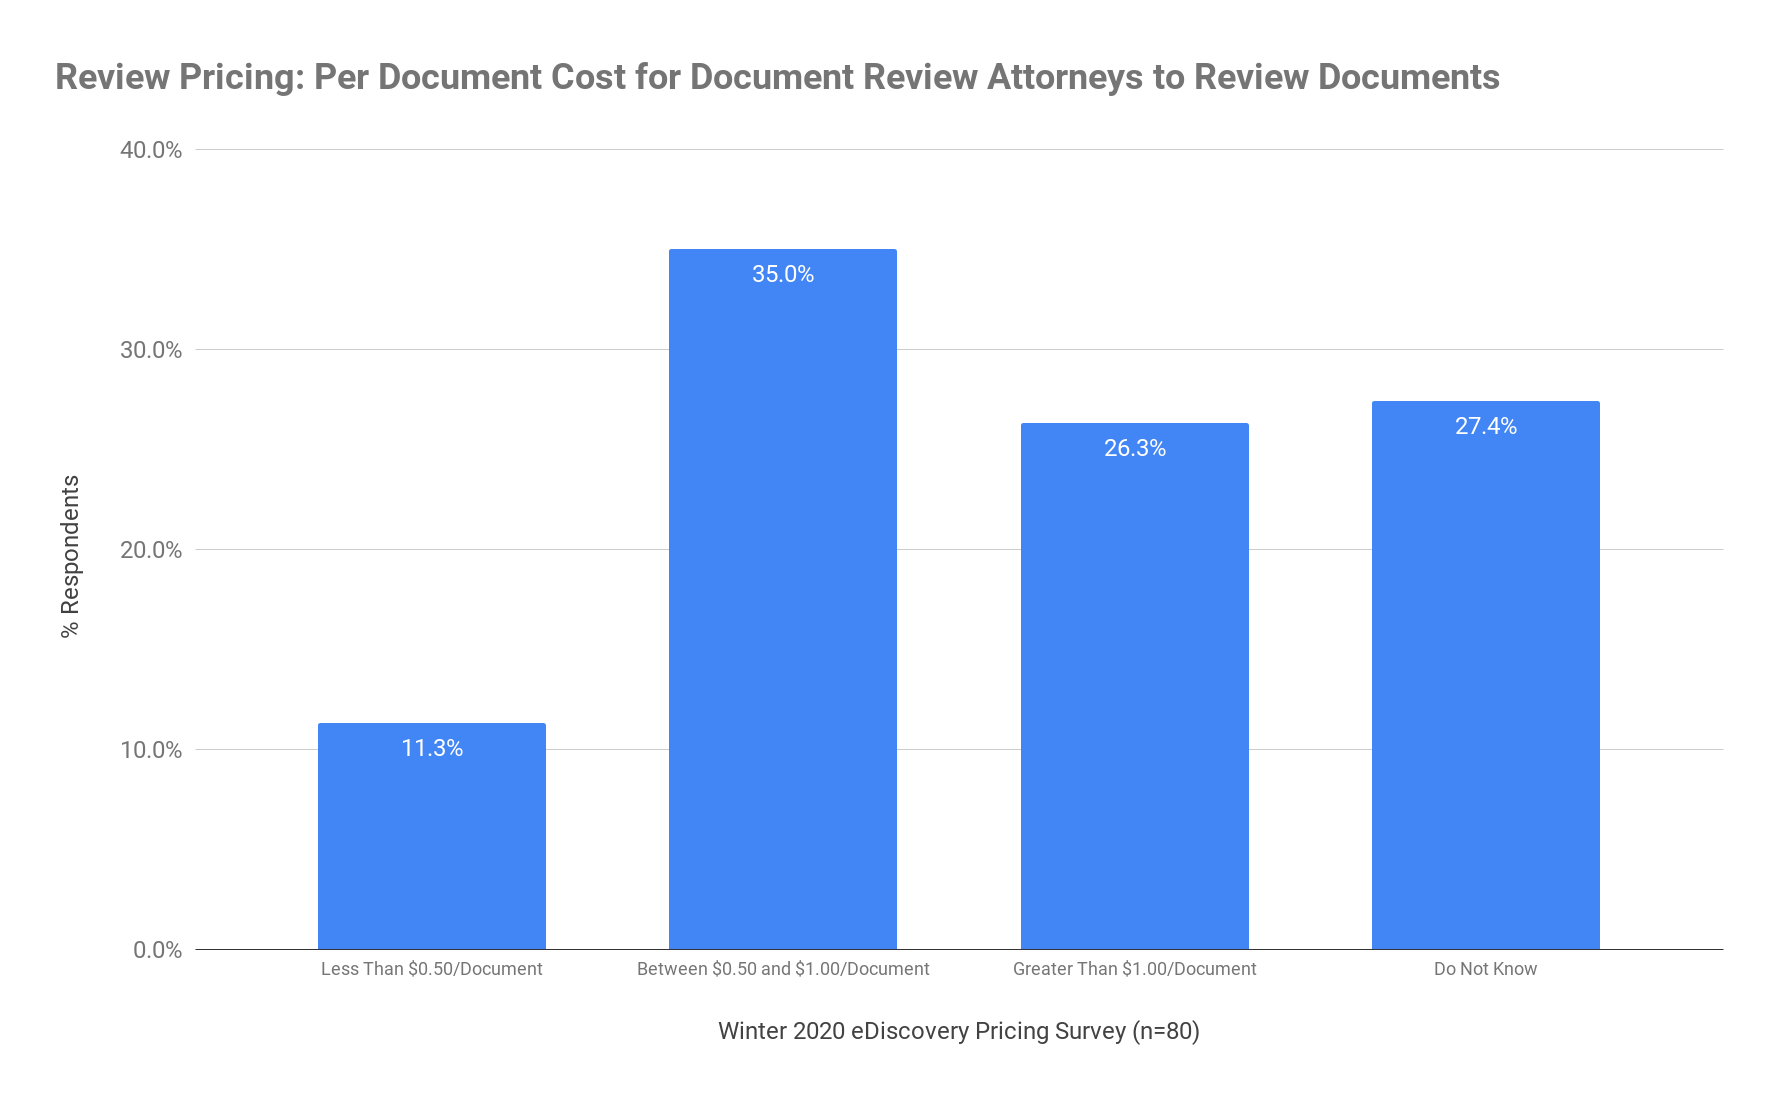 Review Pricing - Per Document Cost for Document Review Attorneys to Review Documents - Winter 2020